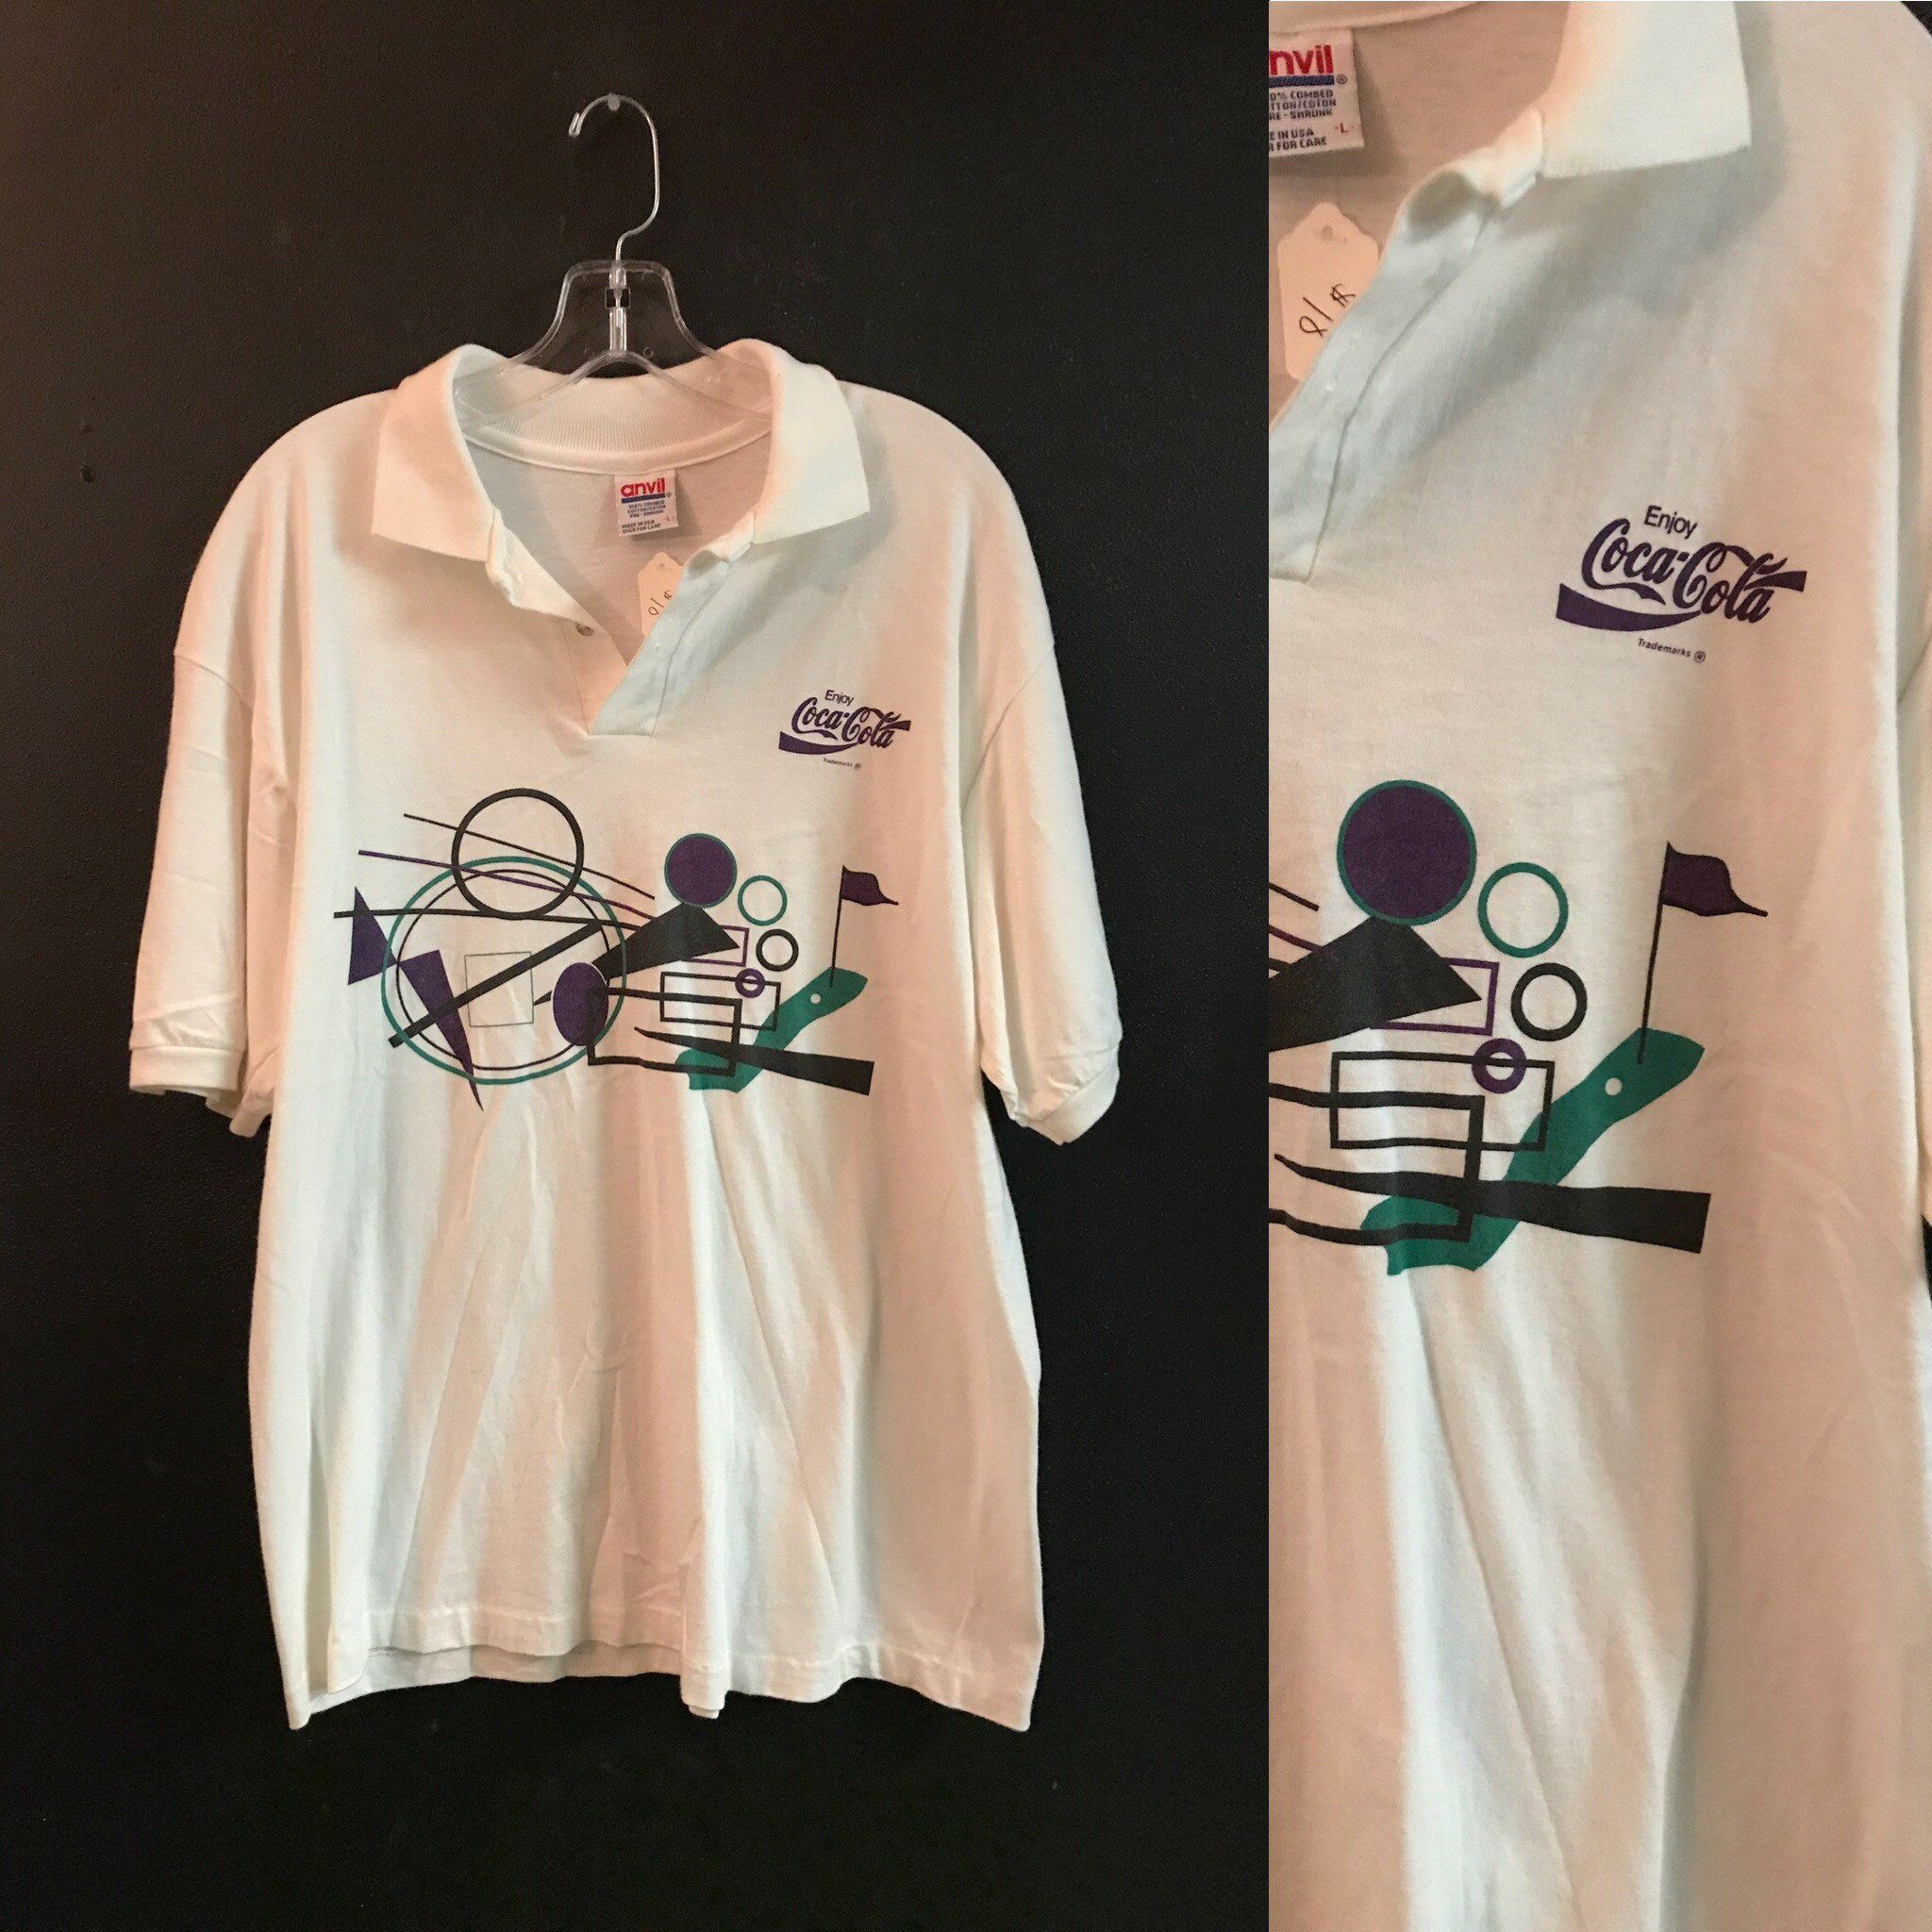 Vintage 80's Coca Cola White Graphic Polo Dad shirt mens size large listing  7437